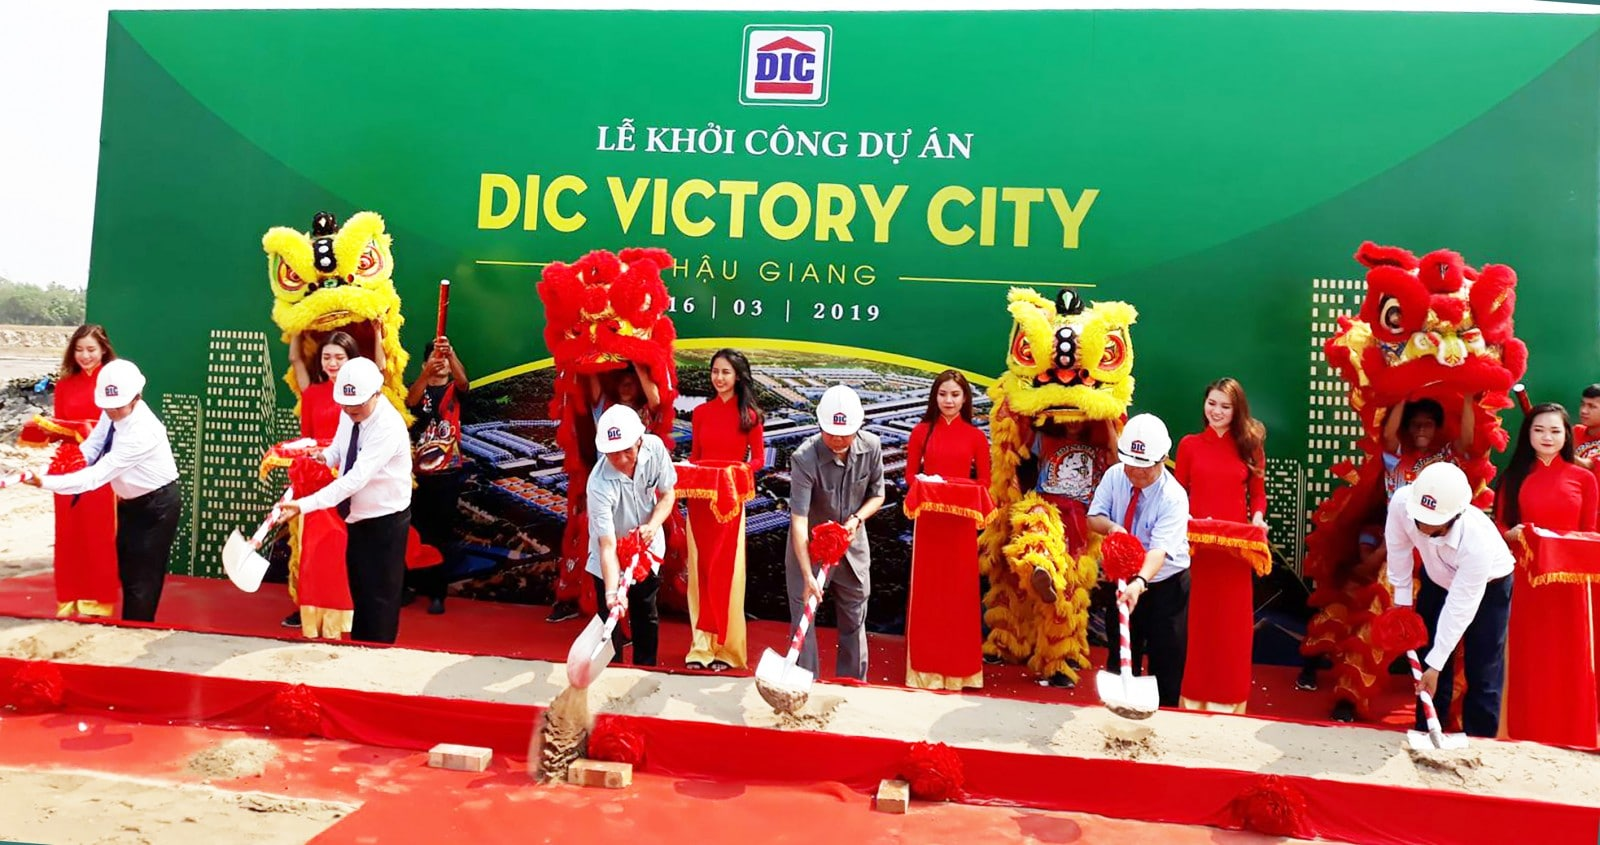 Le dong tho DIC Victory City - DIC VICTORY CITY